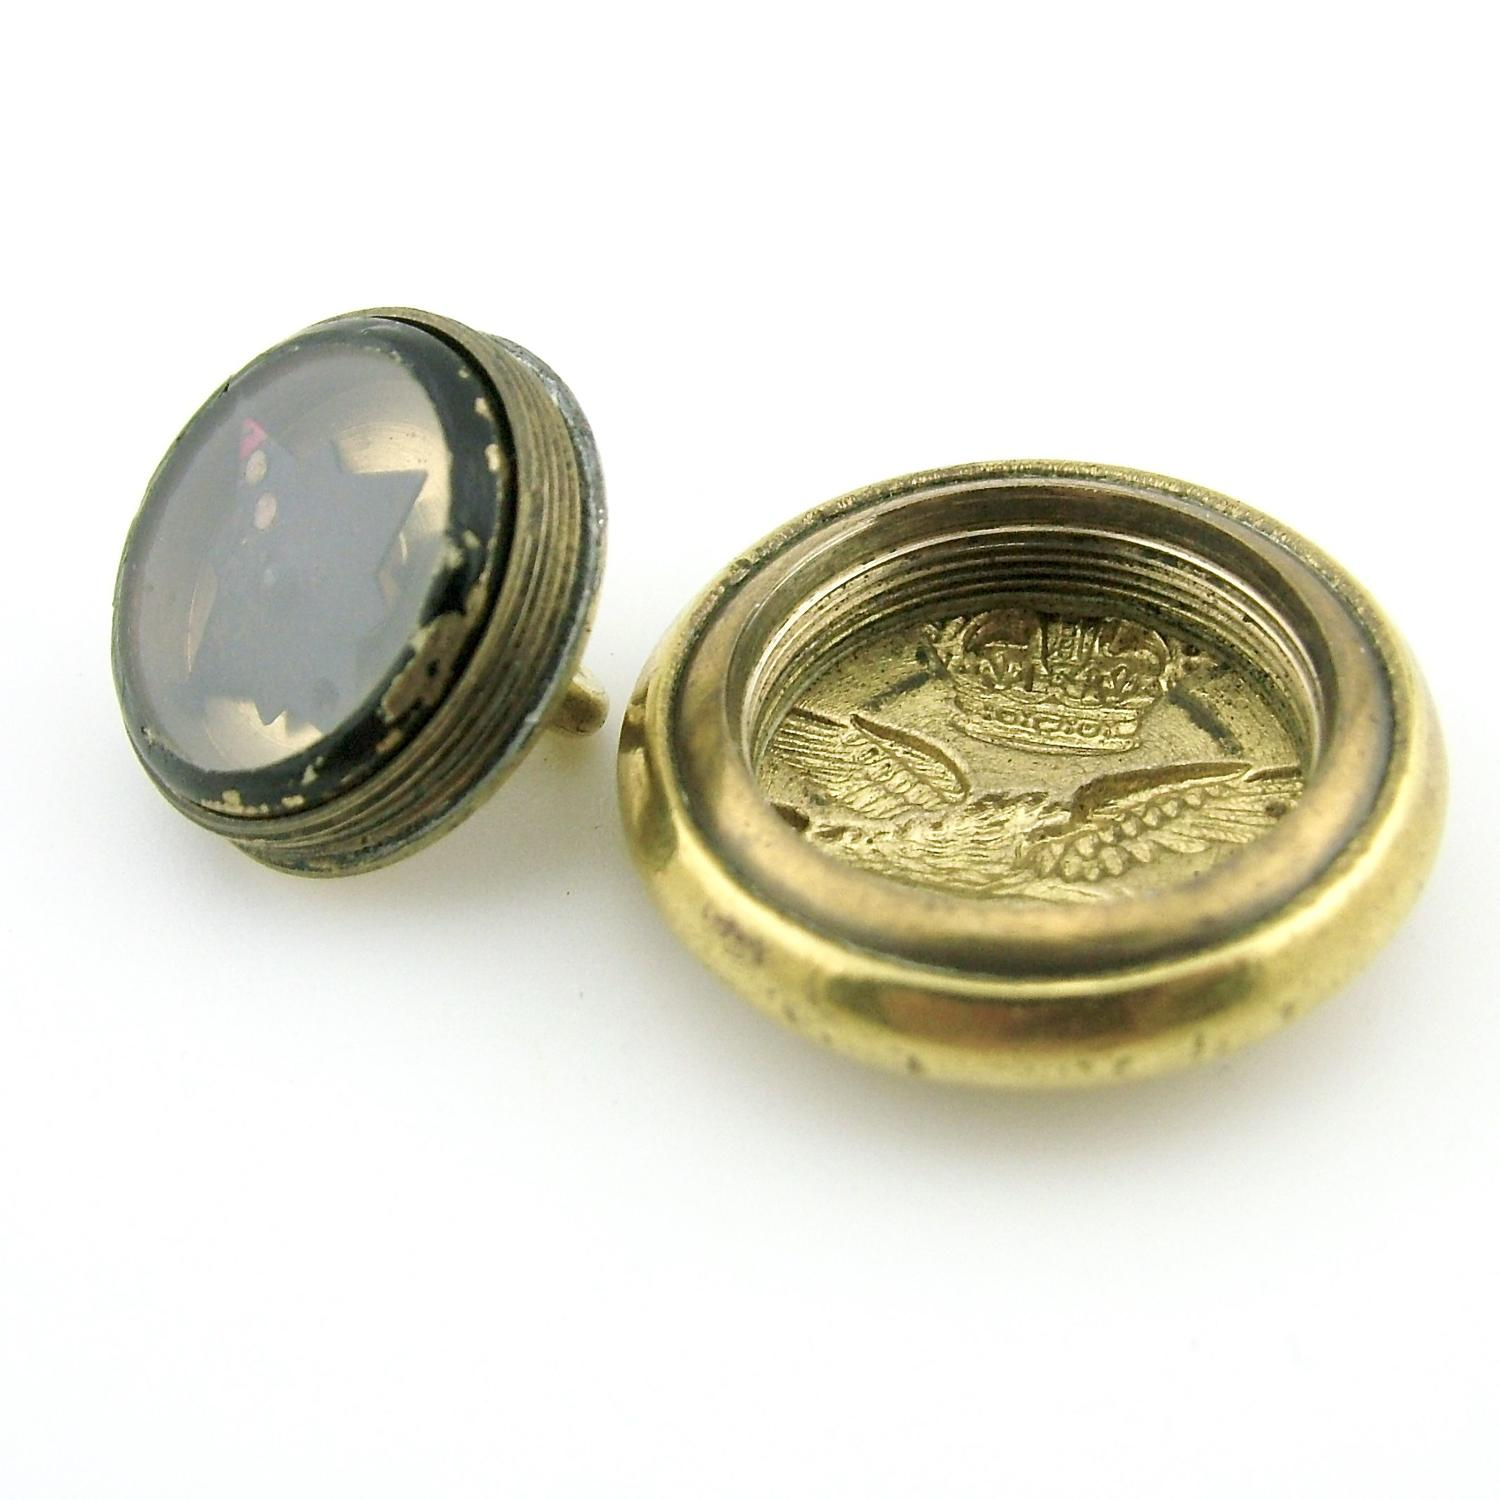 RCAF escape and evasion button compass - history